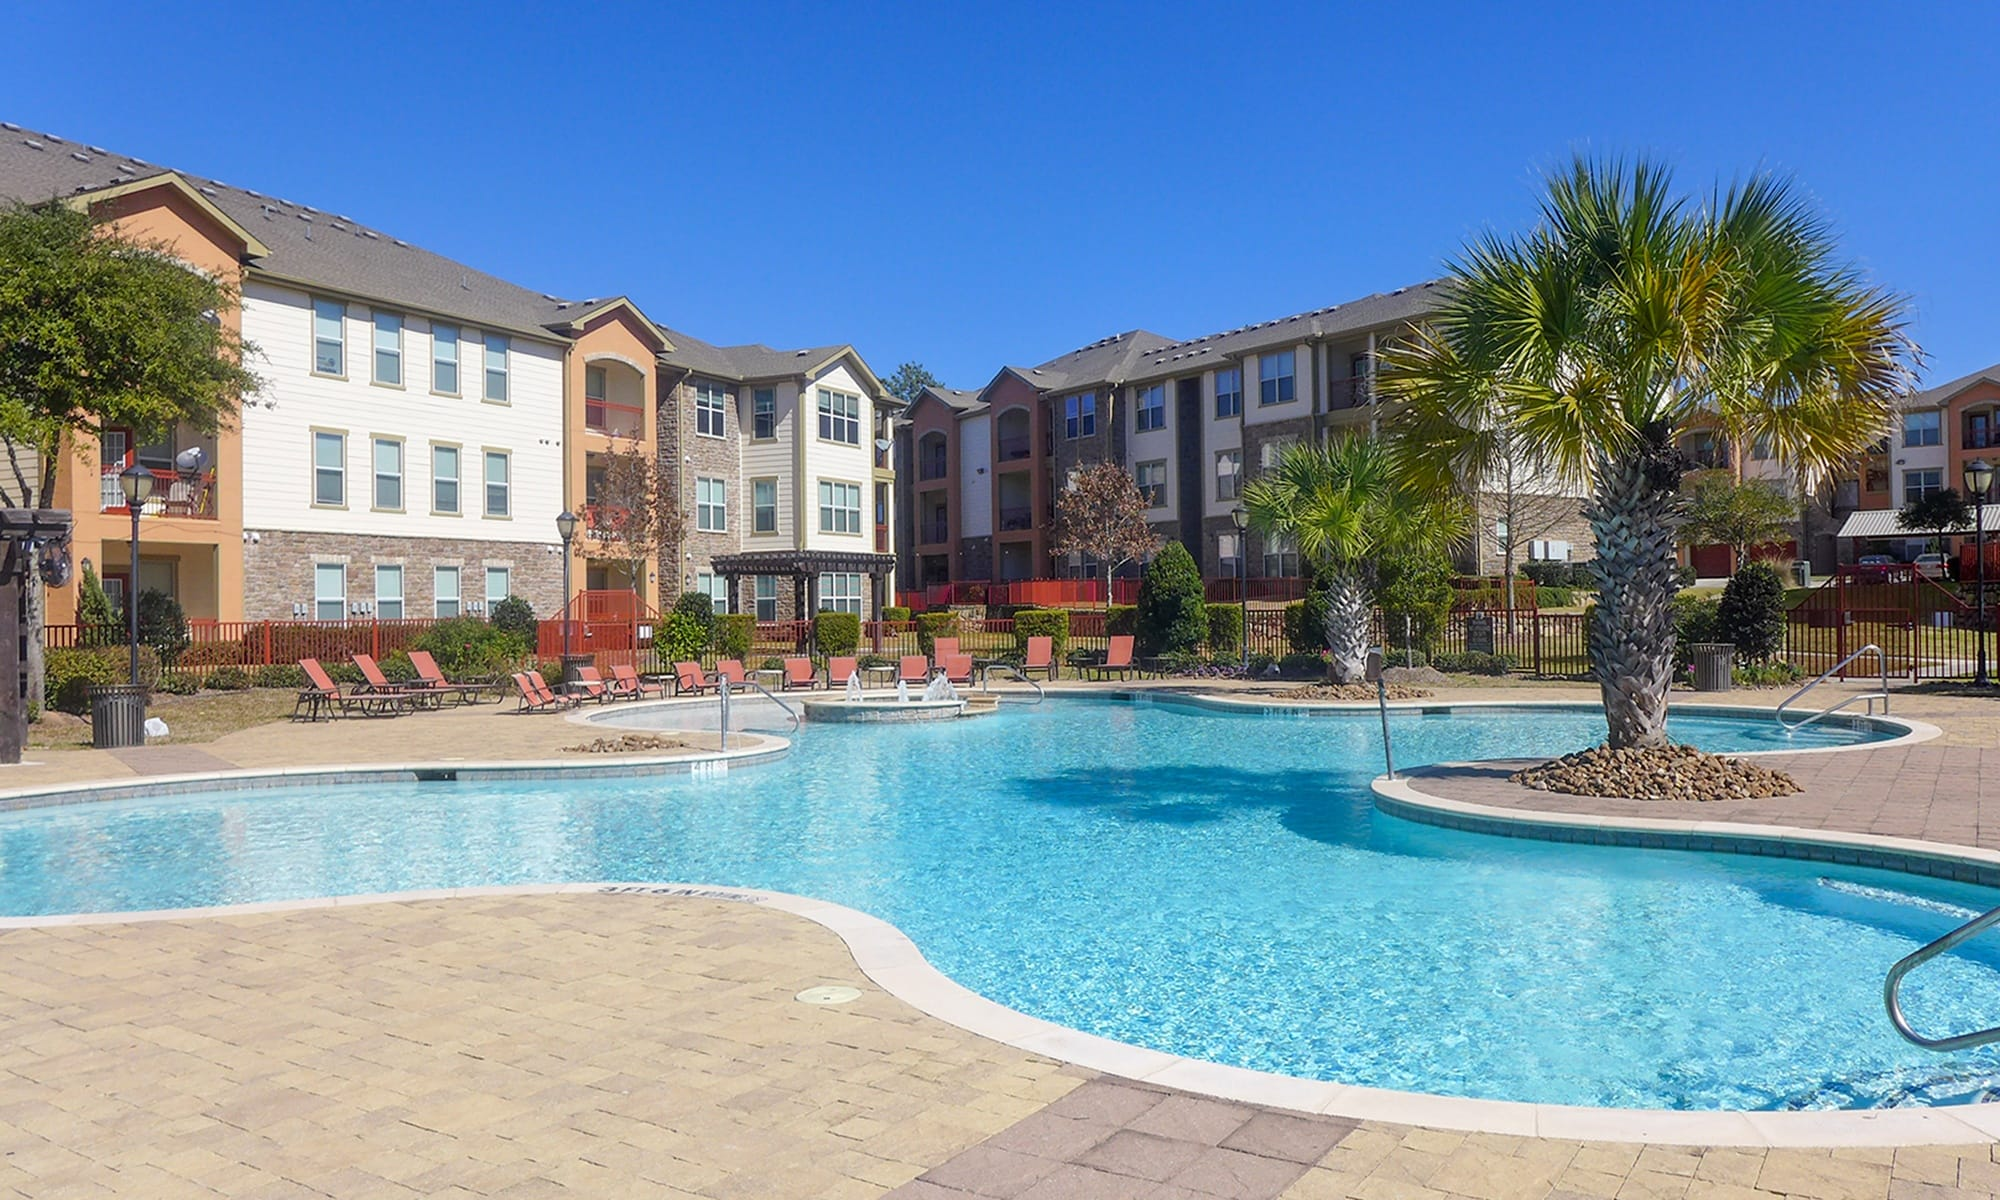 Apartments in Conroe, TX